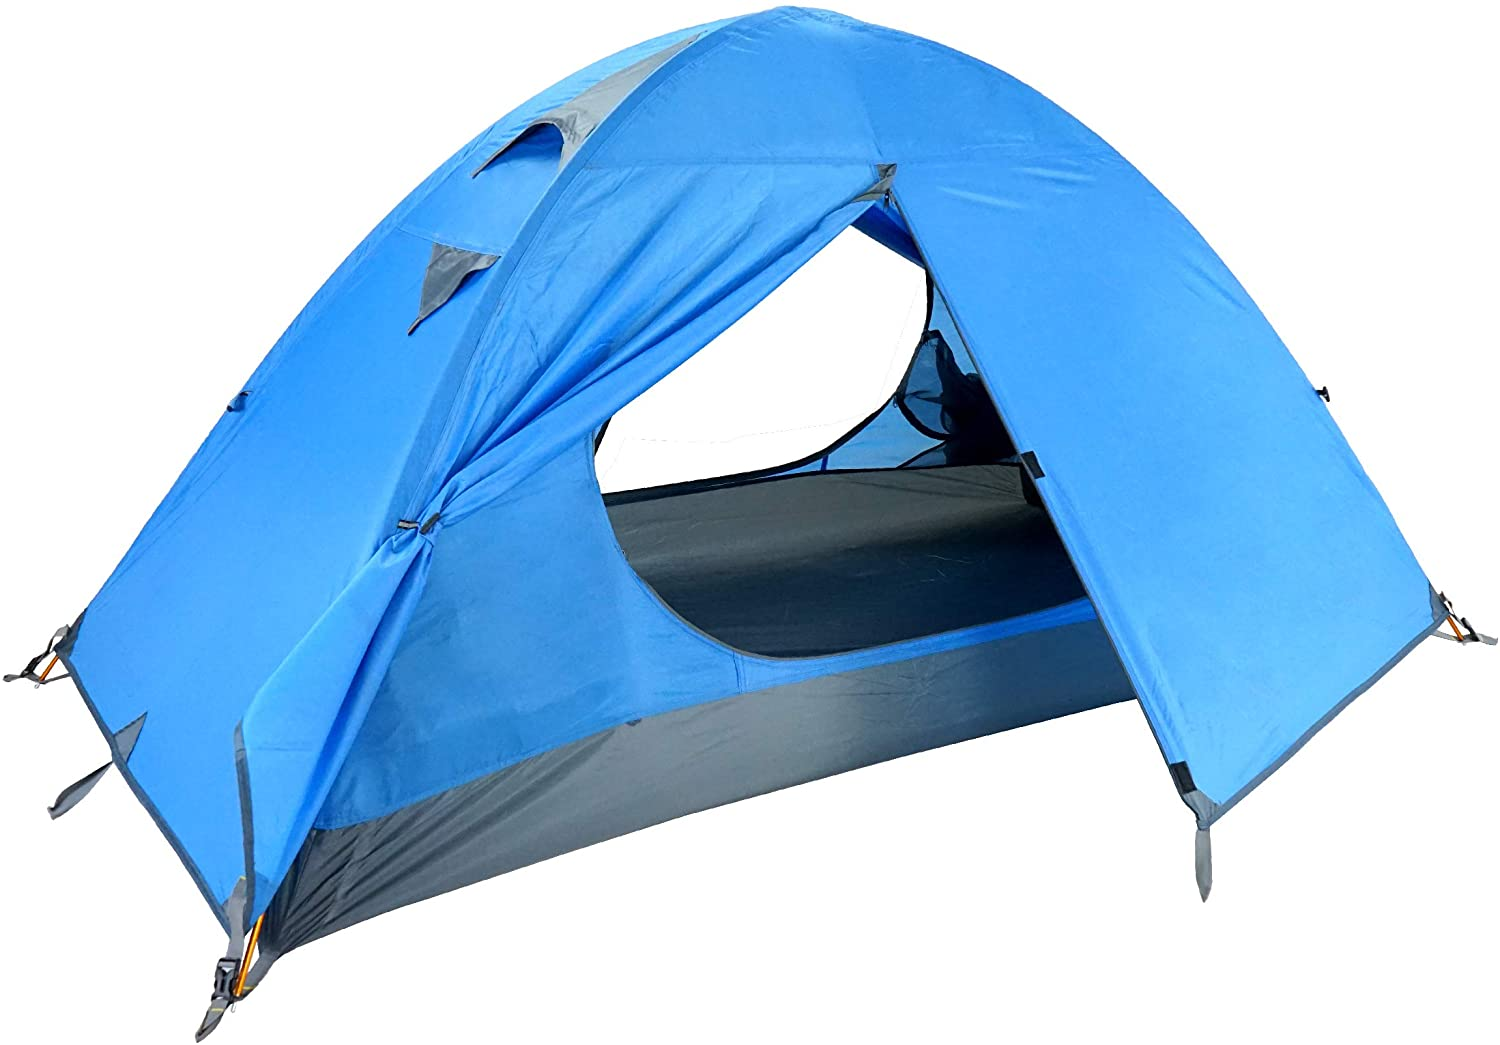 Azarxis 3 Season Tent for Camping